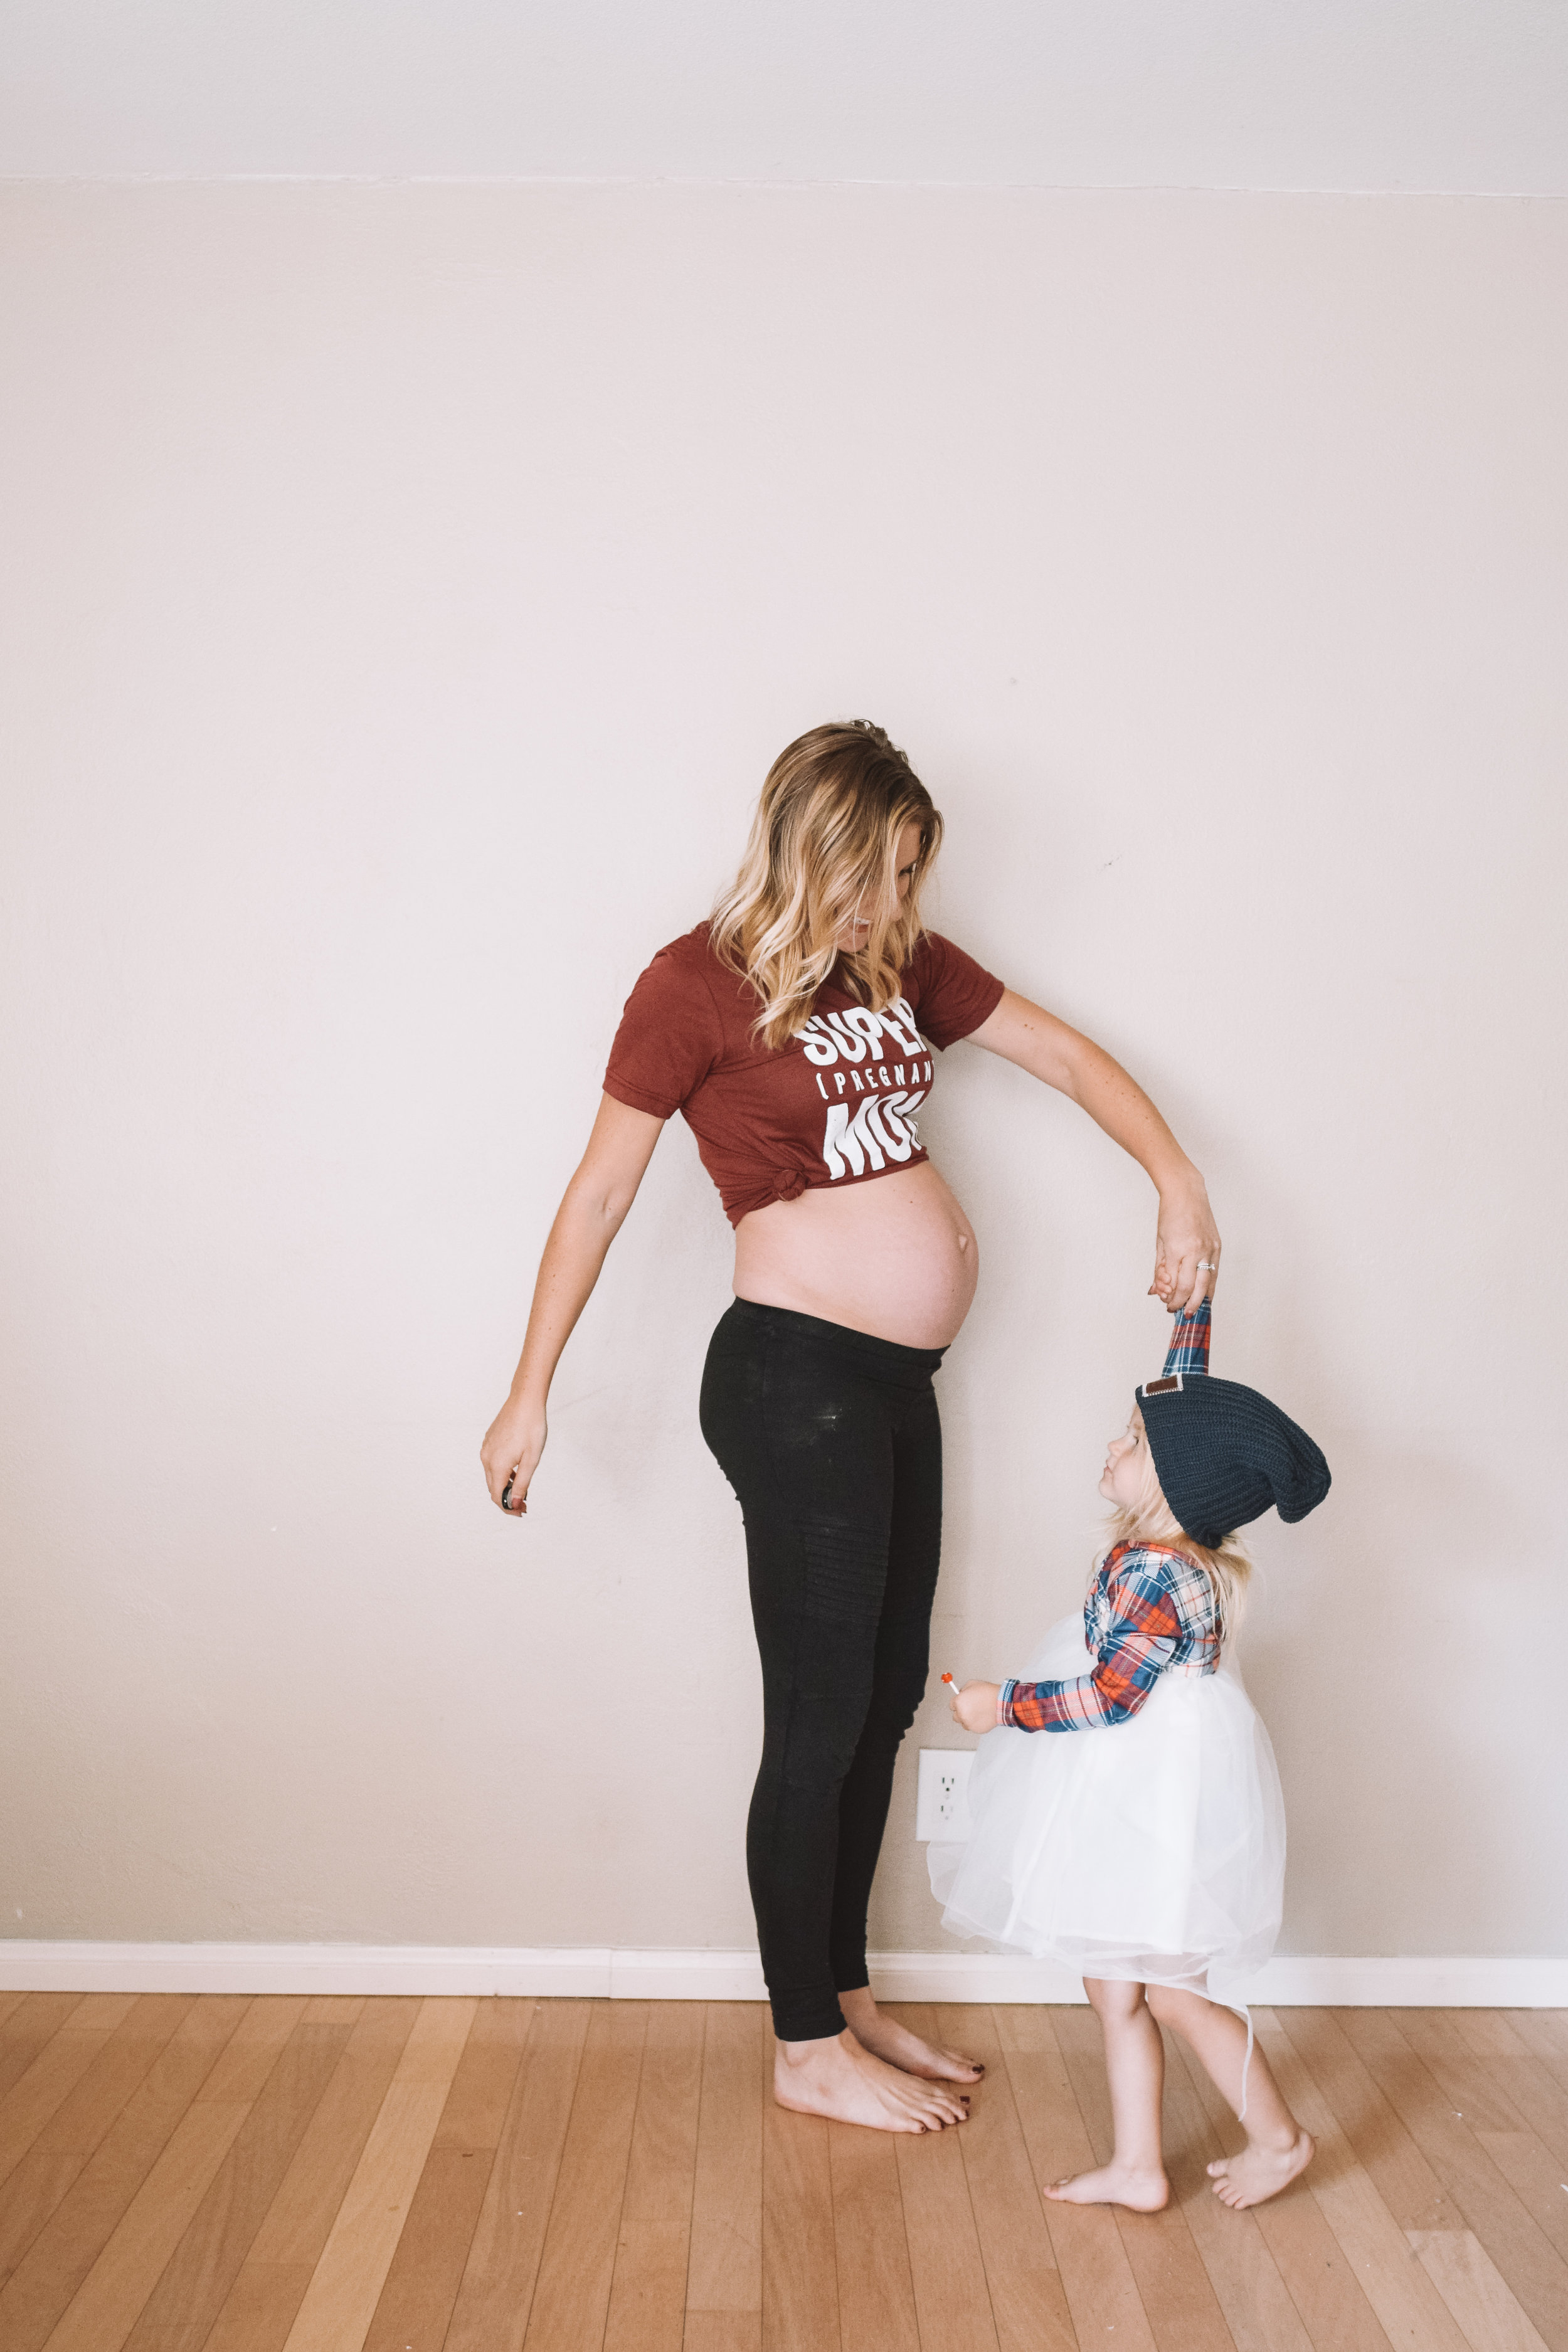 23 Week Pregnant Belly - Funny Pregnancy Shirts - The Overwhelmed Mommy Blogger